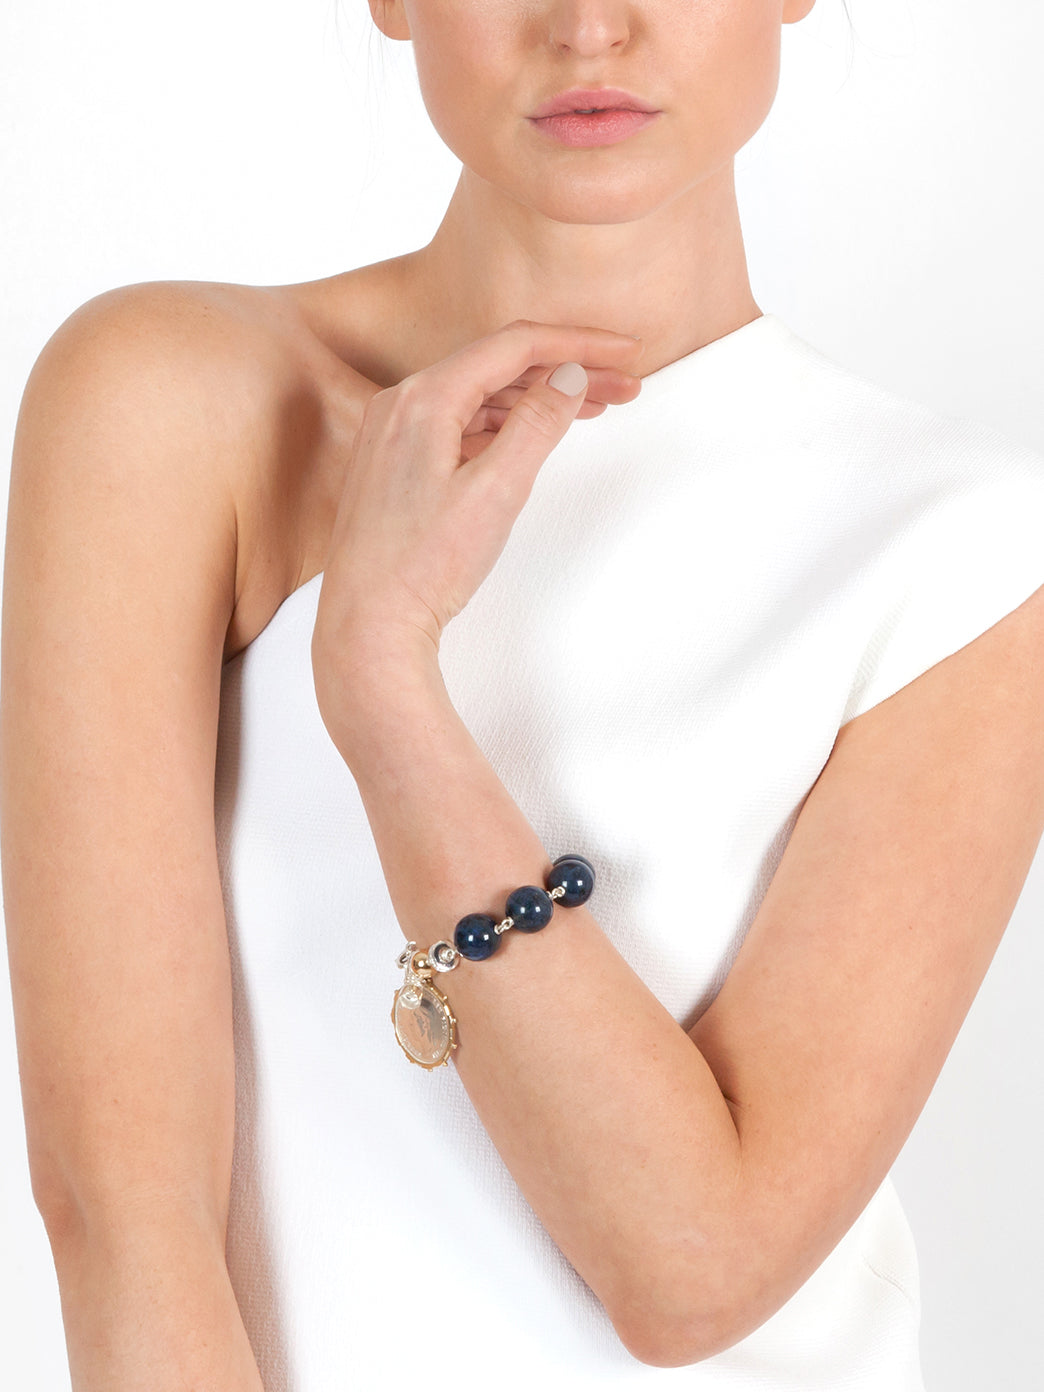 Fiorina Jewellery Elite Shirley Bracelet Sodalite Model